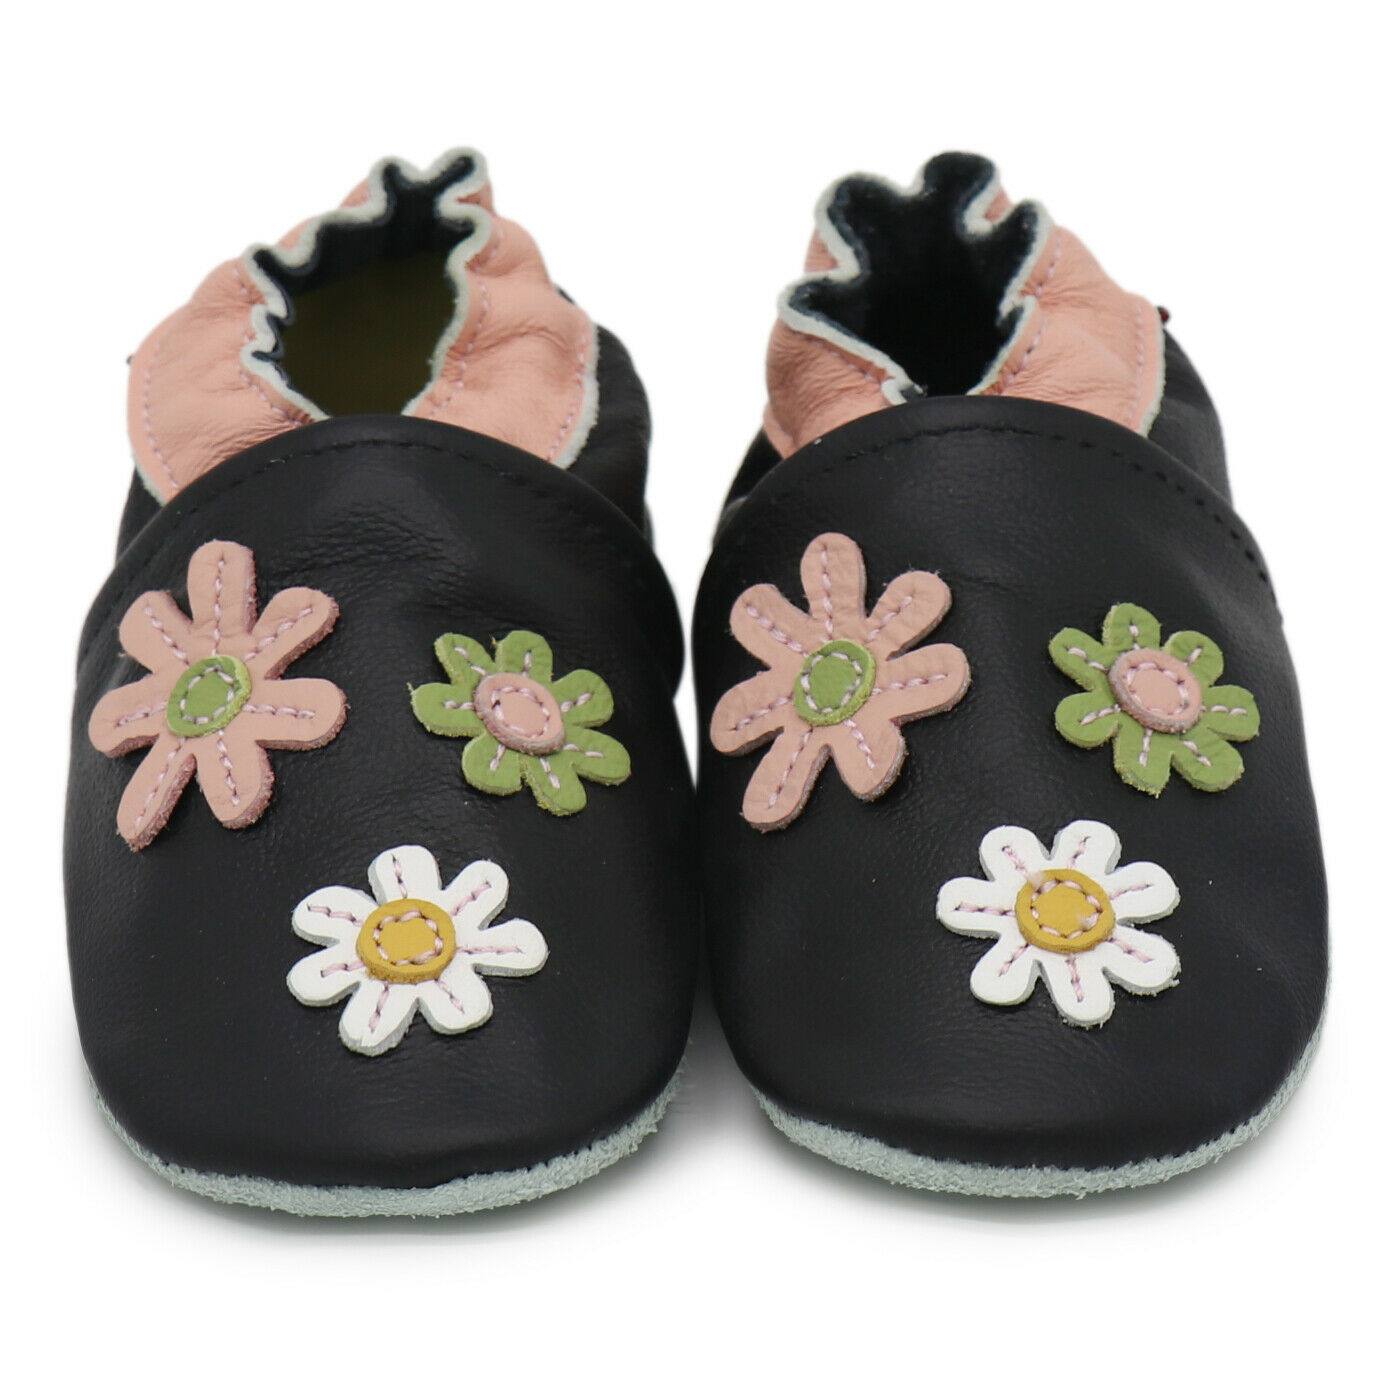 Carozoo 3 Flowers Black 2-3y